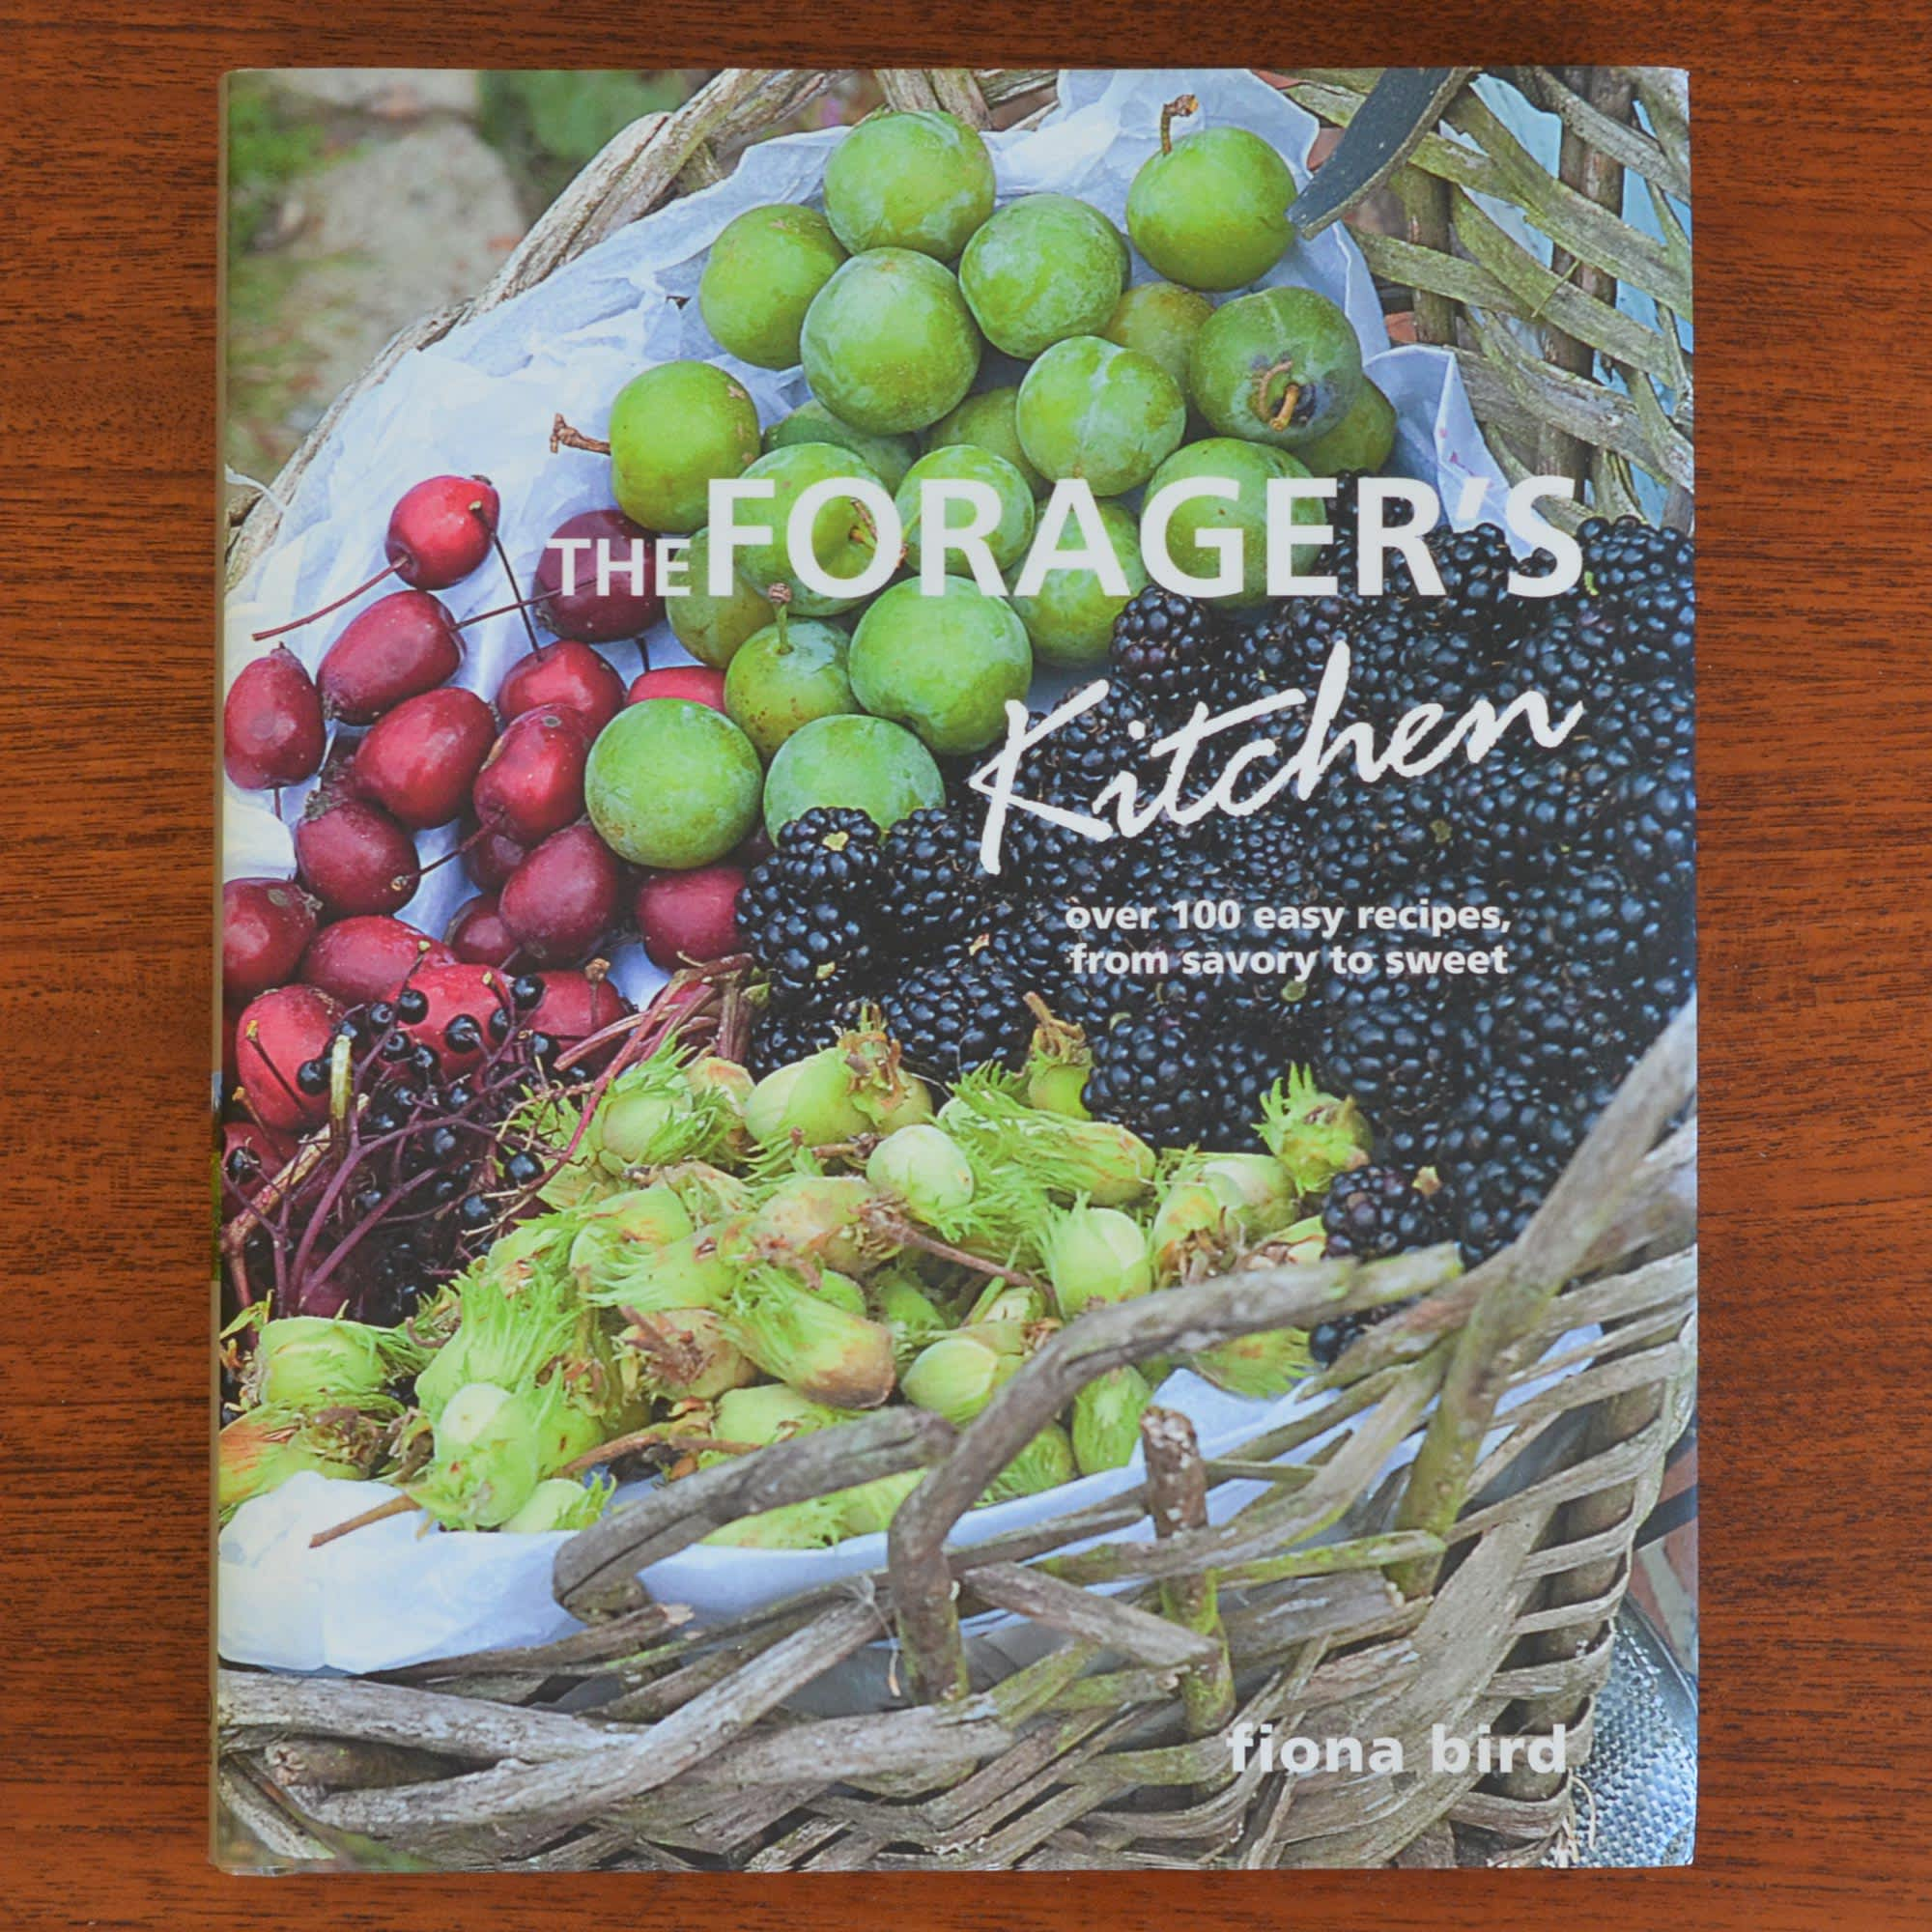 =The Forager's Kitchen